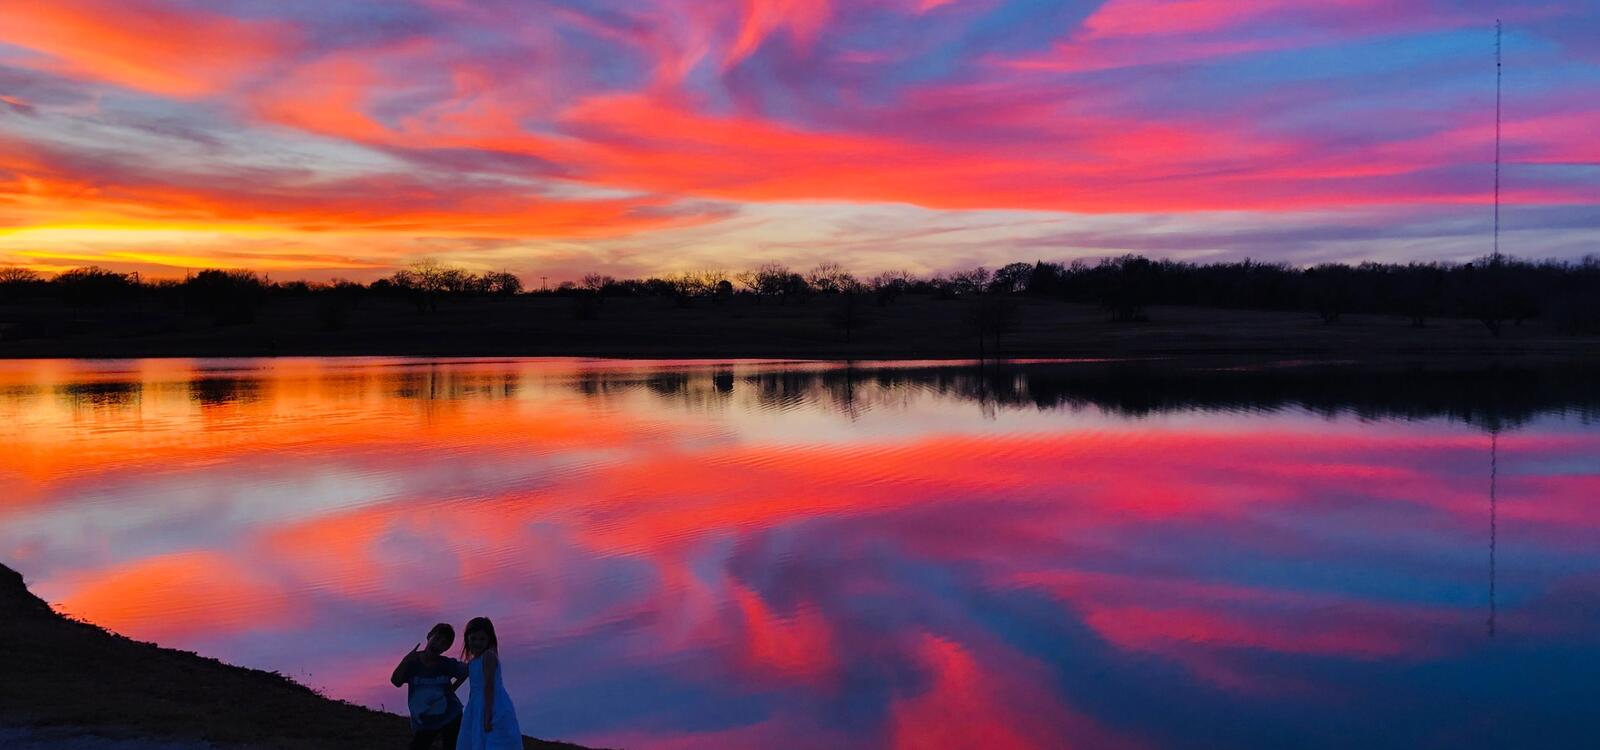 A beautiful sunset made up of blues, pinks, oranges and yellows reflect off of the pond's water